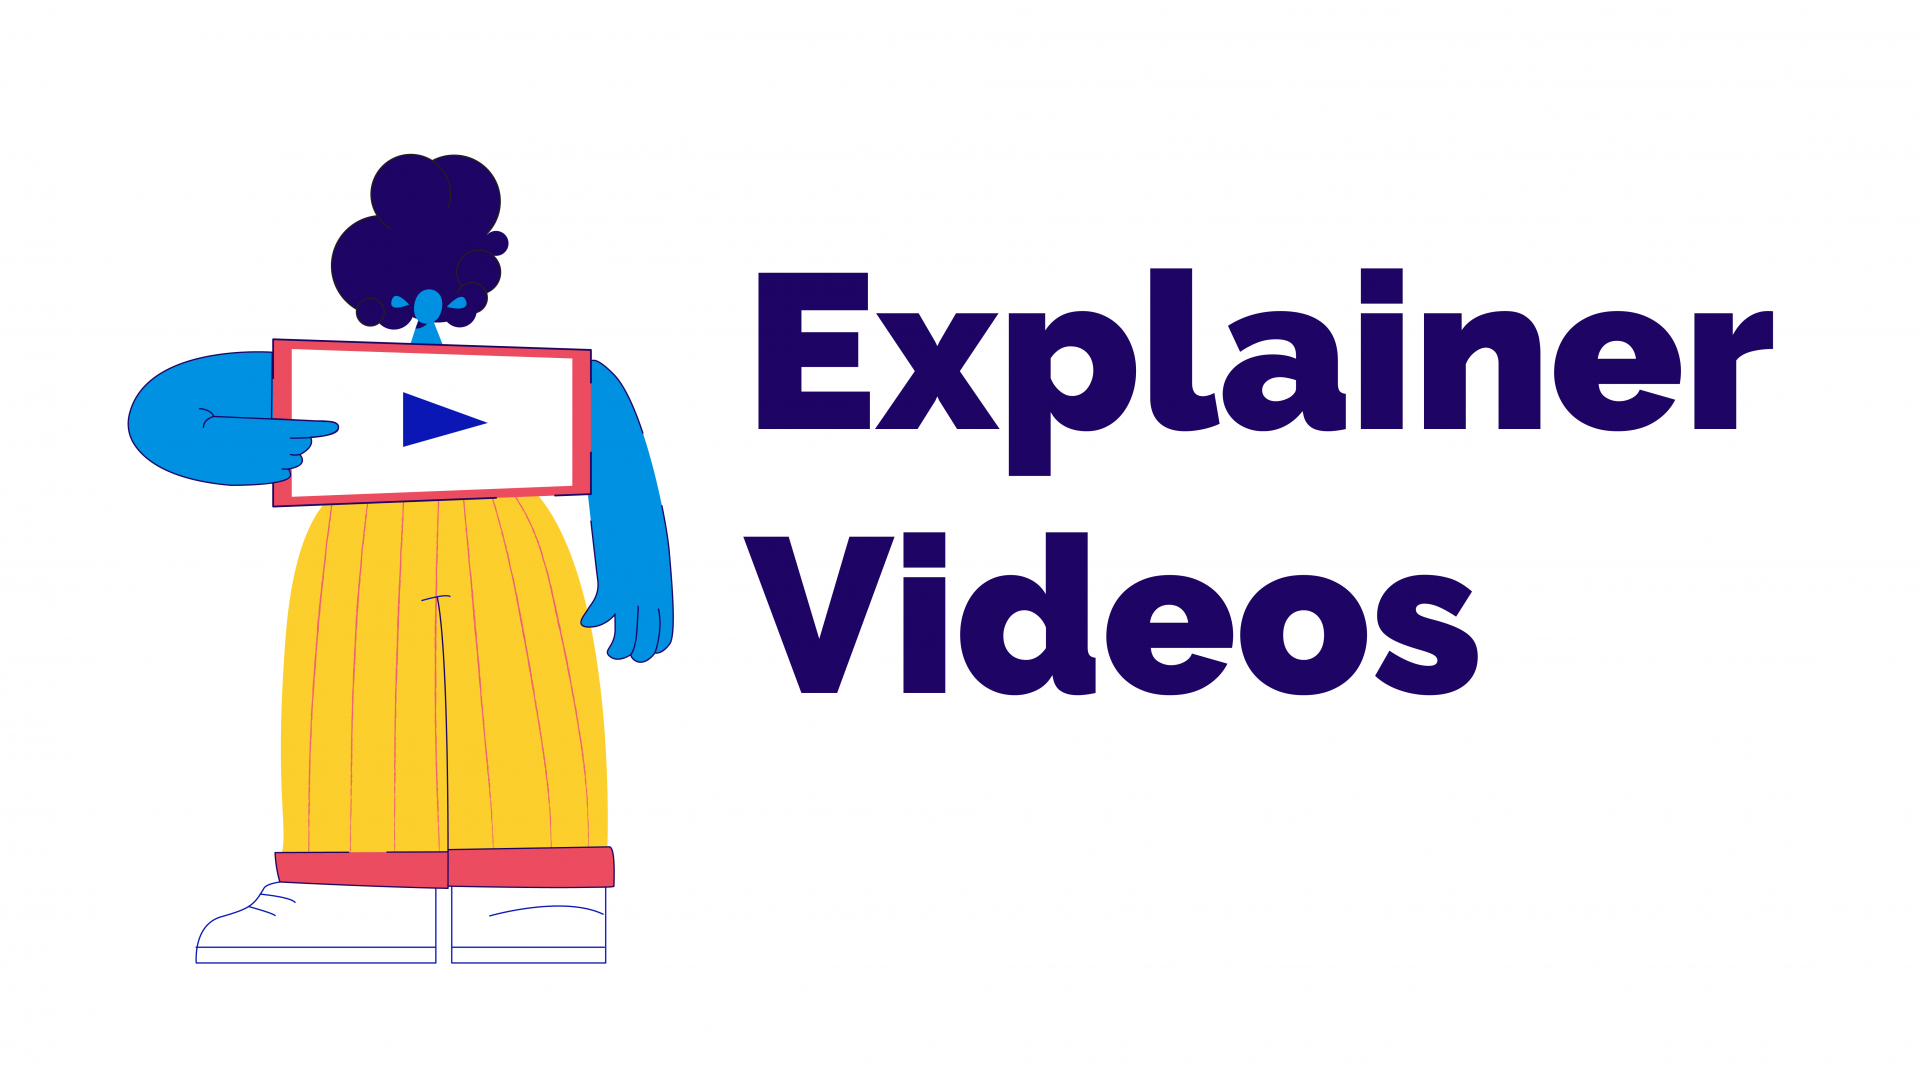 33 Explainer Video Statistics That You Need To Know